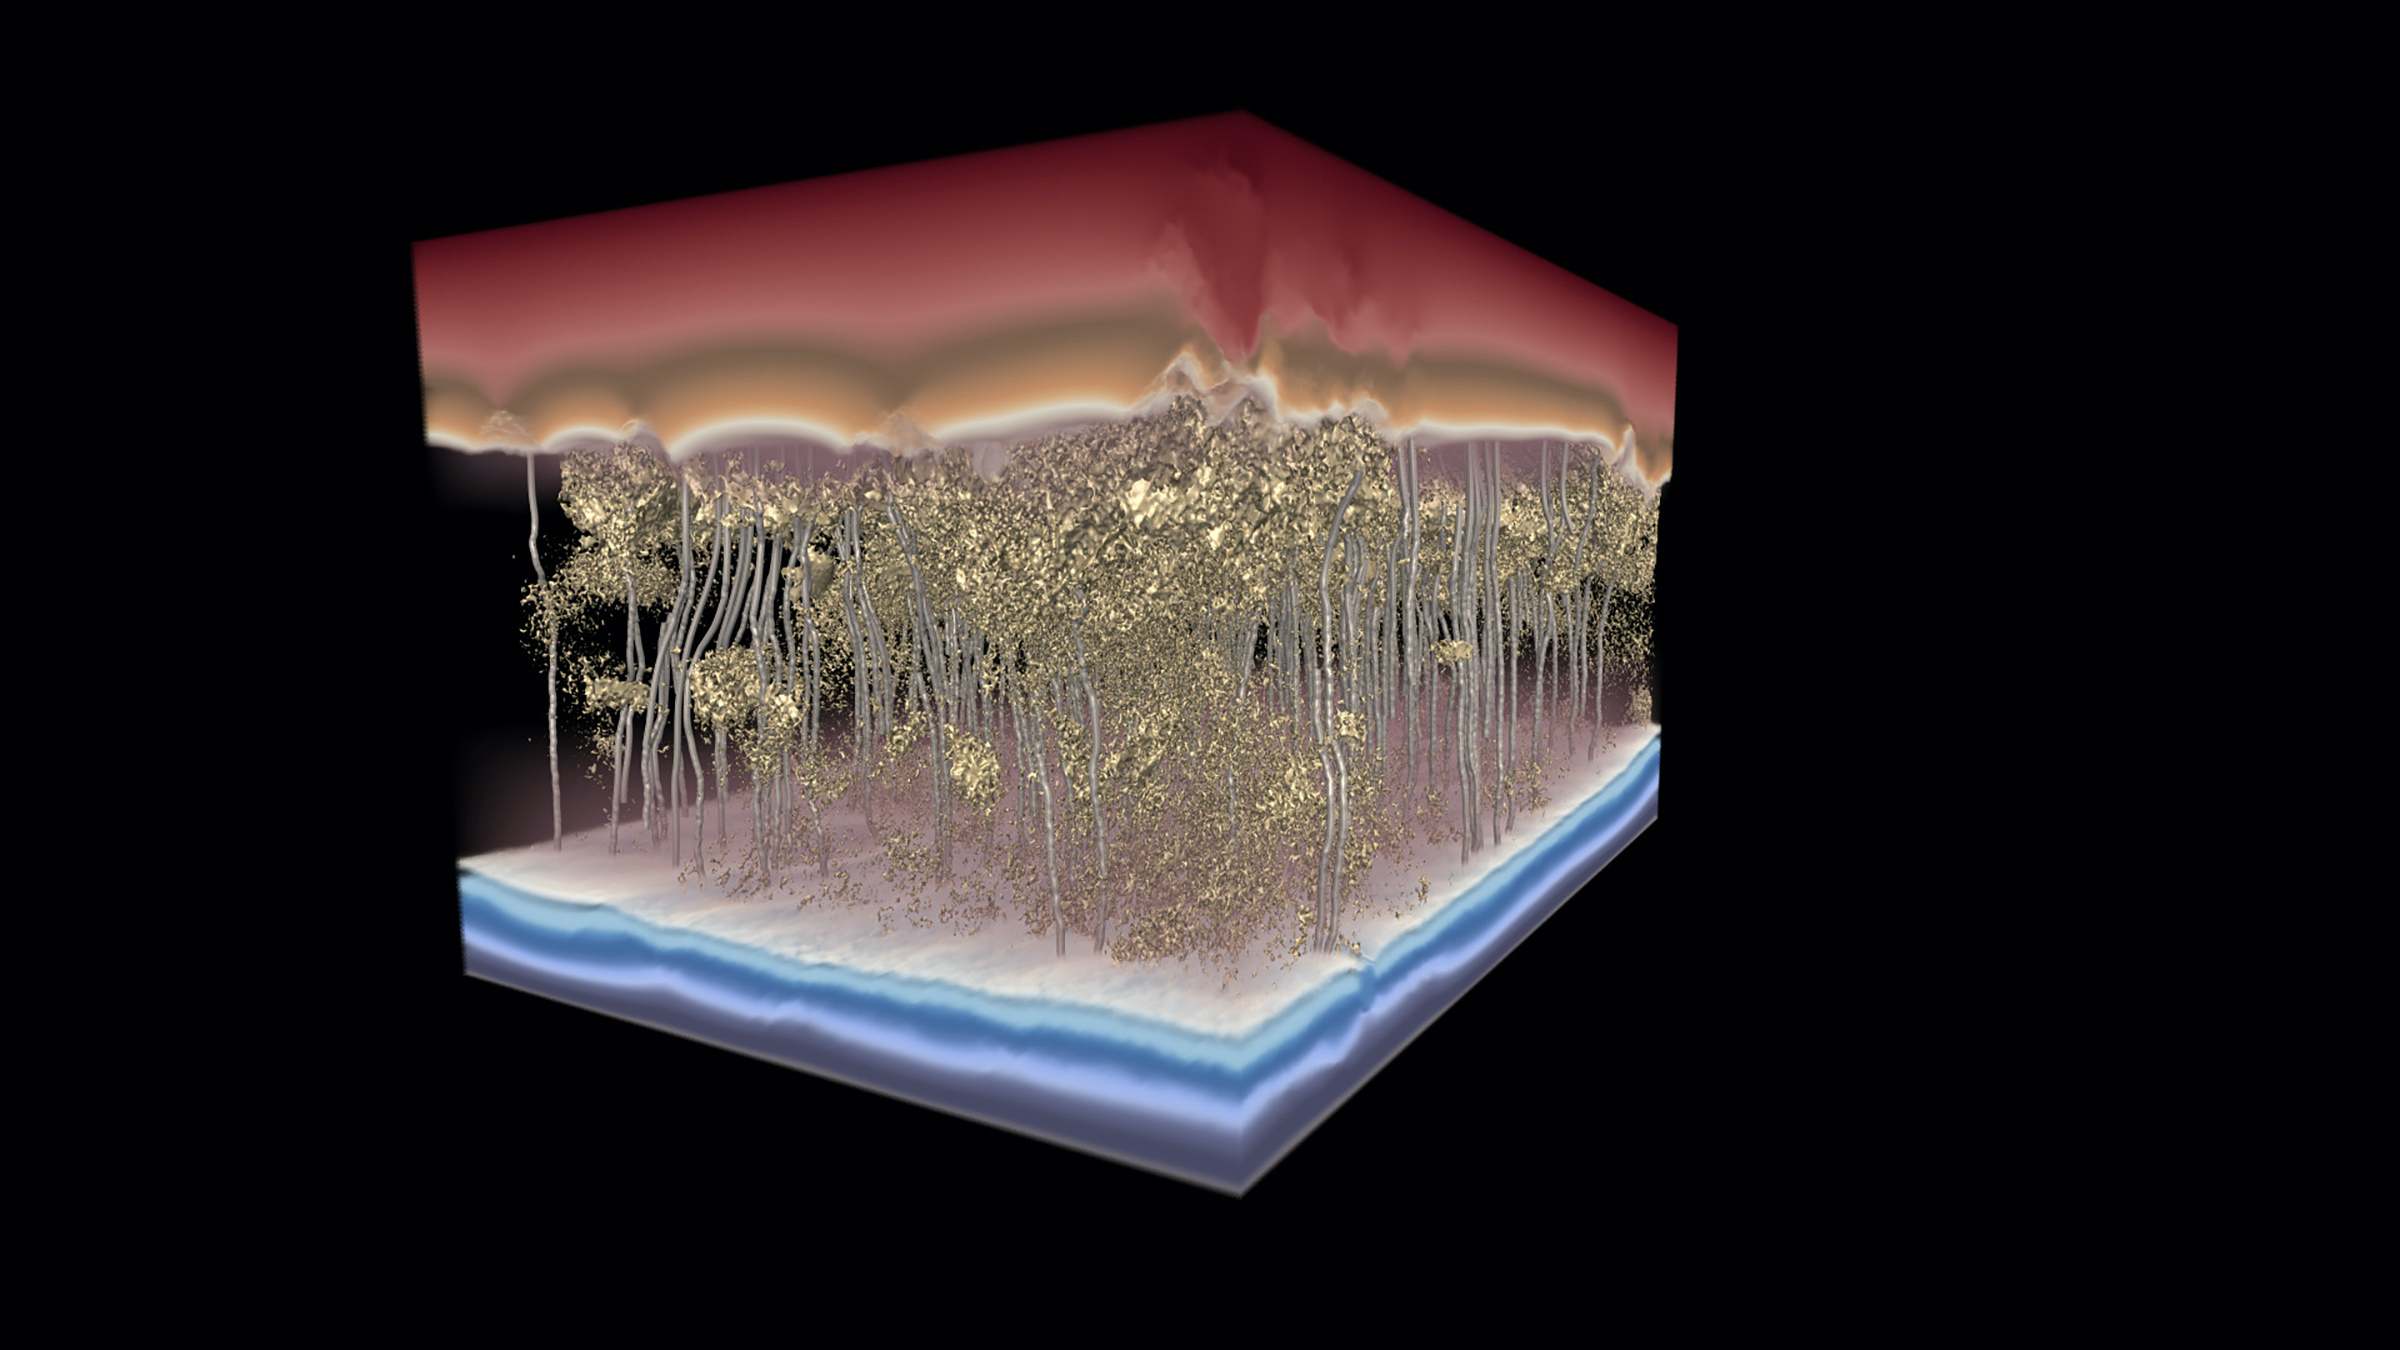 A 3D simulation image showing water flowing through a polymer desalination membrane,